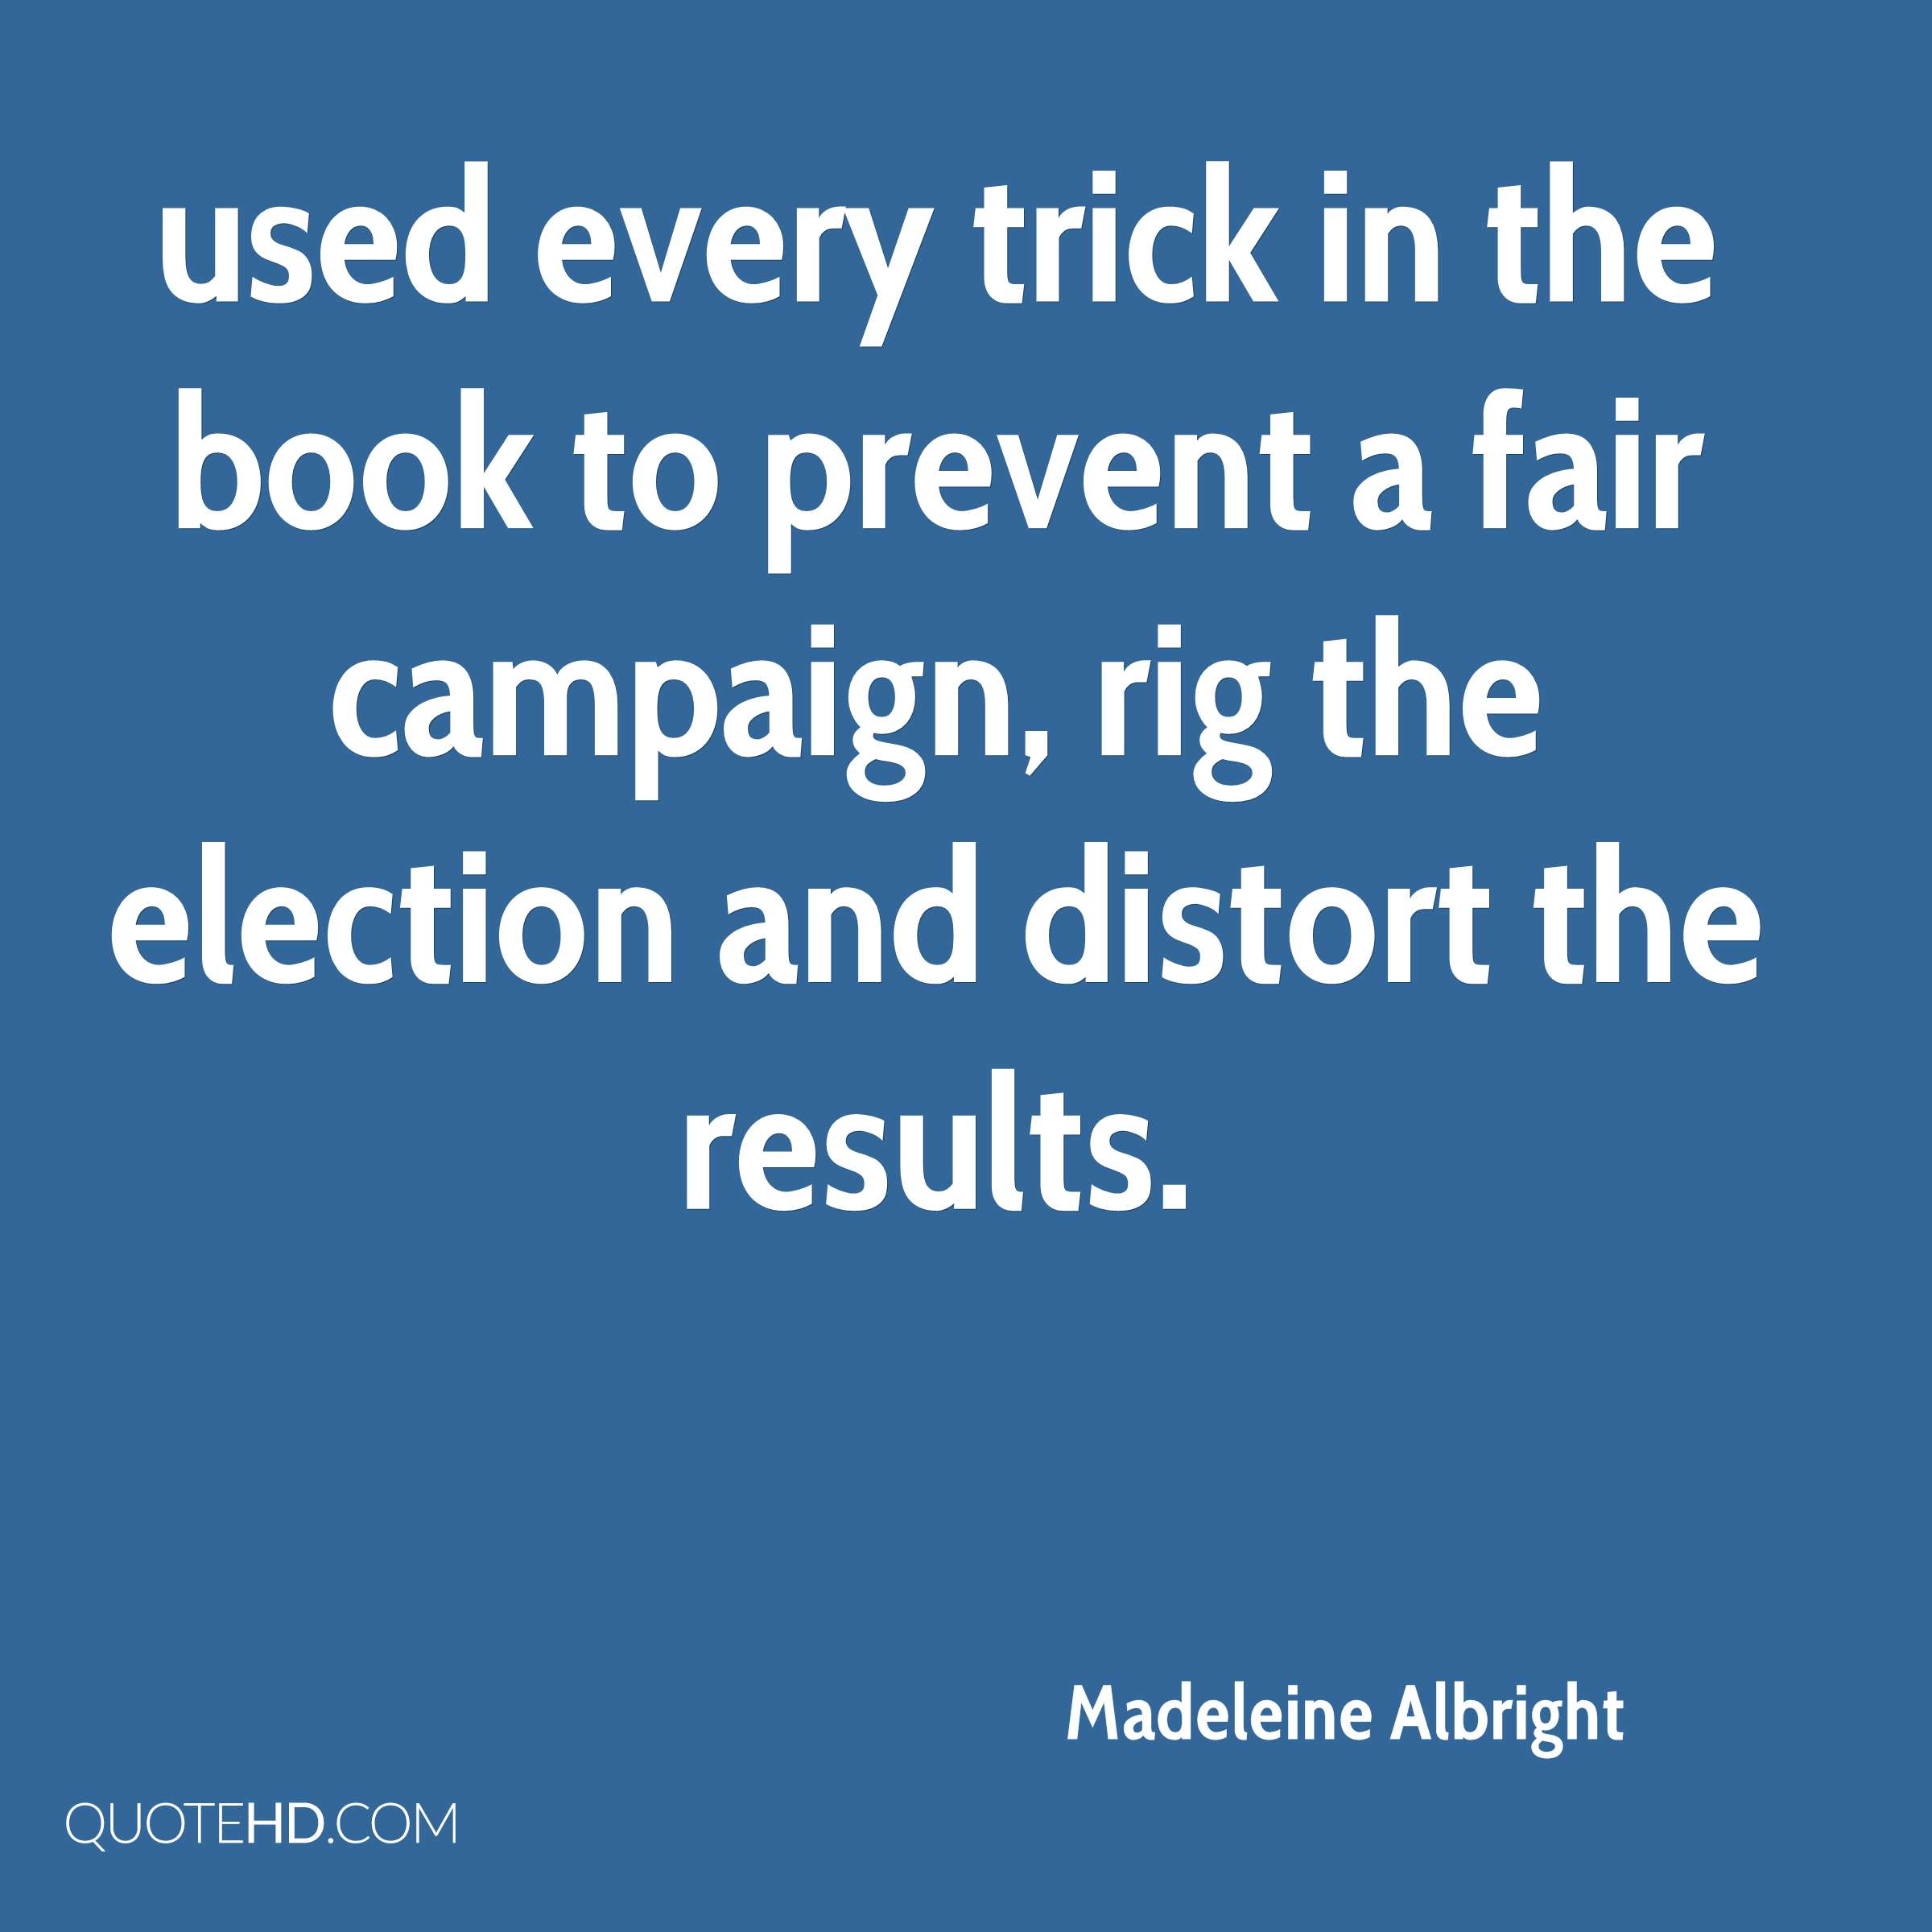 used every trick in the book to prevent a fair campaign, rig the election and distort the results.